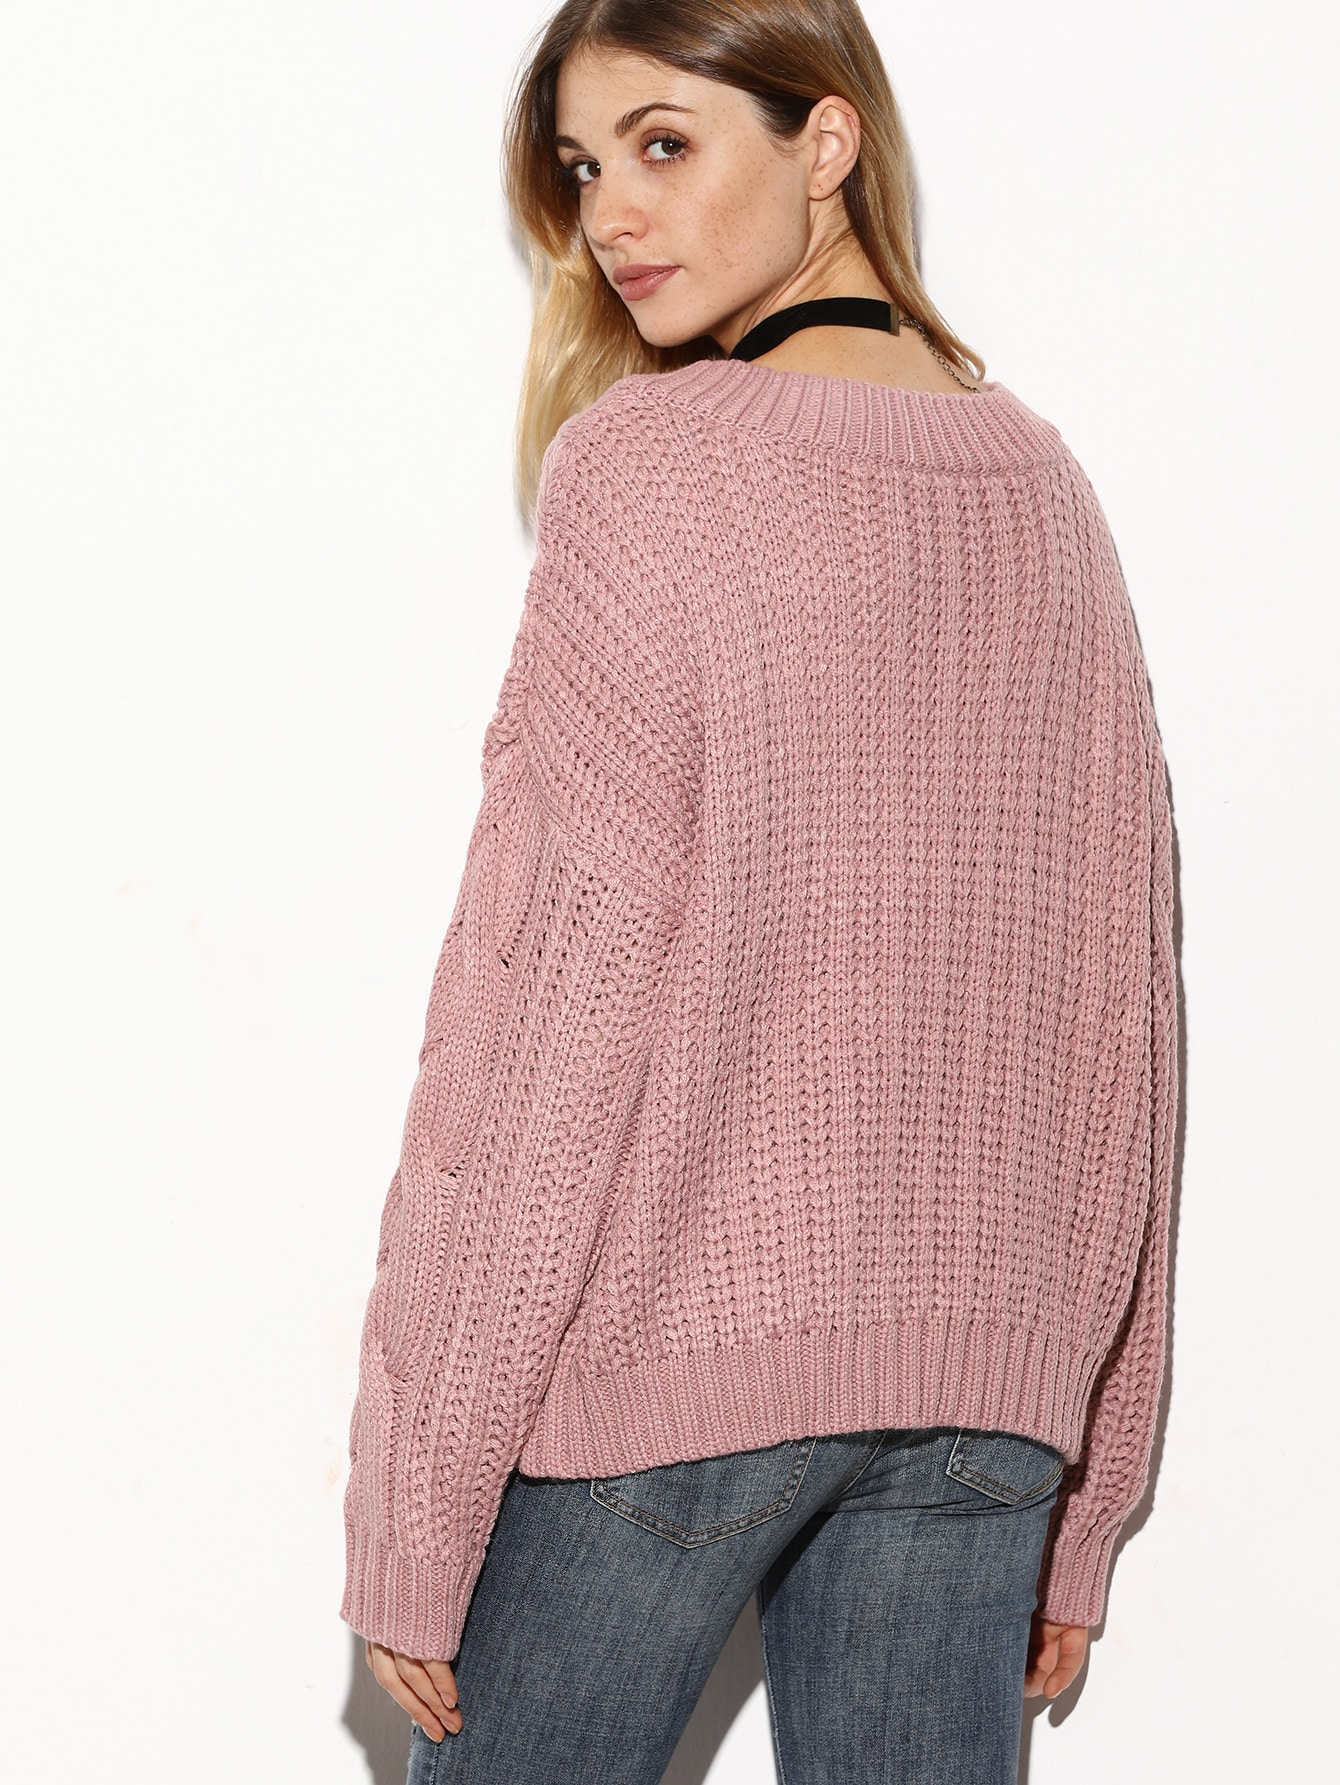 The ultimate chunky knit with a perfect cropped fit. Soft